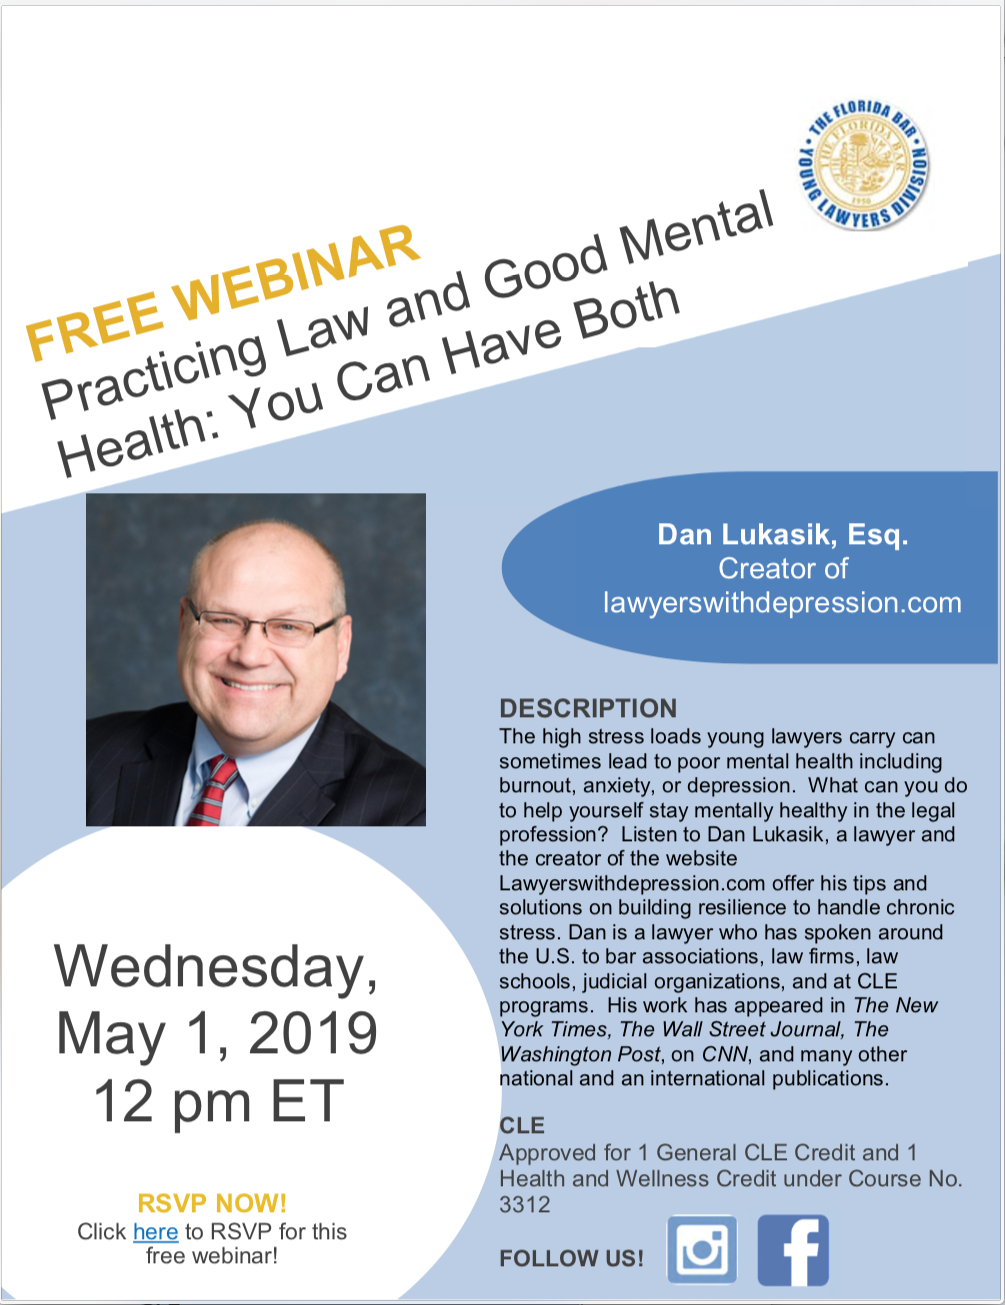 Practicing Law and Good Mental Health: You Can Have Both, Wednesday, May 1, 2019 12 pm ET, Dan Lukasik, Esq. Creator of lawyerswithdepression.com,DESCRIPTION The high stress loads young lawyers carry can sometimes lead to poor mental health including burnout, anxiety, or depression. What can you do to help yourself stay mentally healthy in the legal profession? Listen to Dan Lukasik, a lawyer and the creator of the website Lawyerswithdepression.com offer his tips and solutions on building resilience to handle chronic stress. Dan is a lawyer who has spoken around the U.S. to bar associations, law firms, law schools, judicial organizations, and at CLE programs. His work has appeared in The New York Times, The Wall Street Journal, The Washington Post, on CNN, and many other national and an international publications. CLE Approved for 1 General CLE Credit.